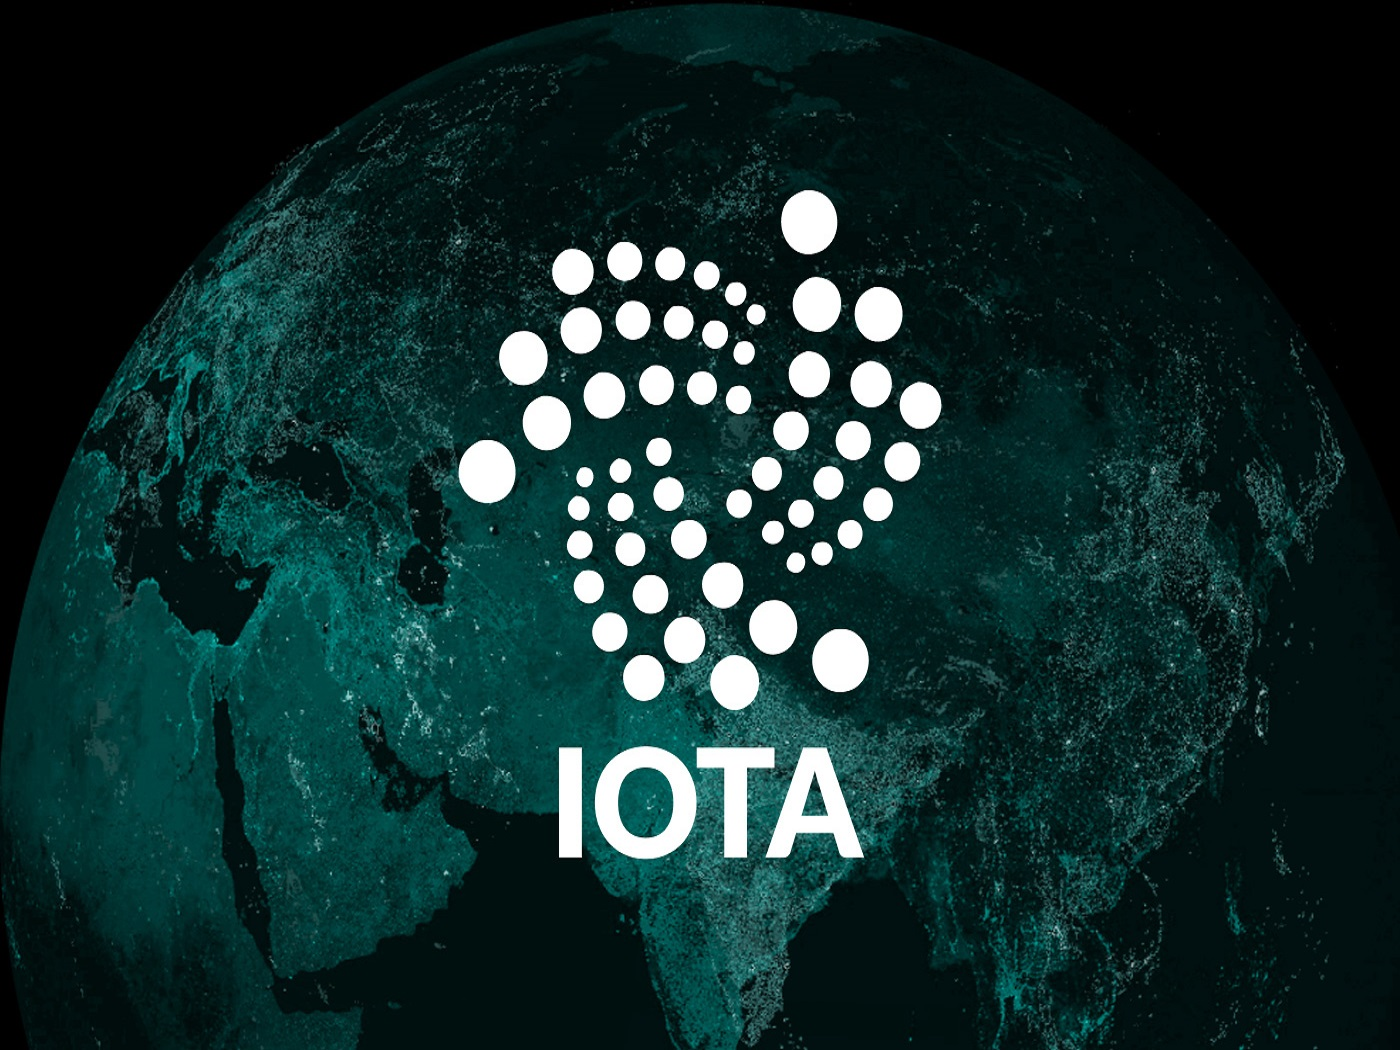 IOTA price analysis and forecast (Friday, July 10th): Negative signals from crypto market